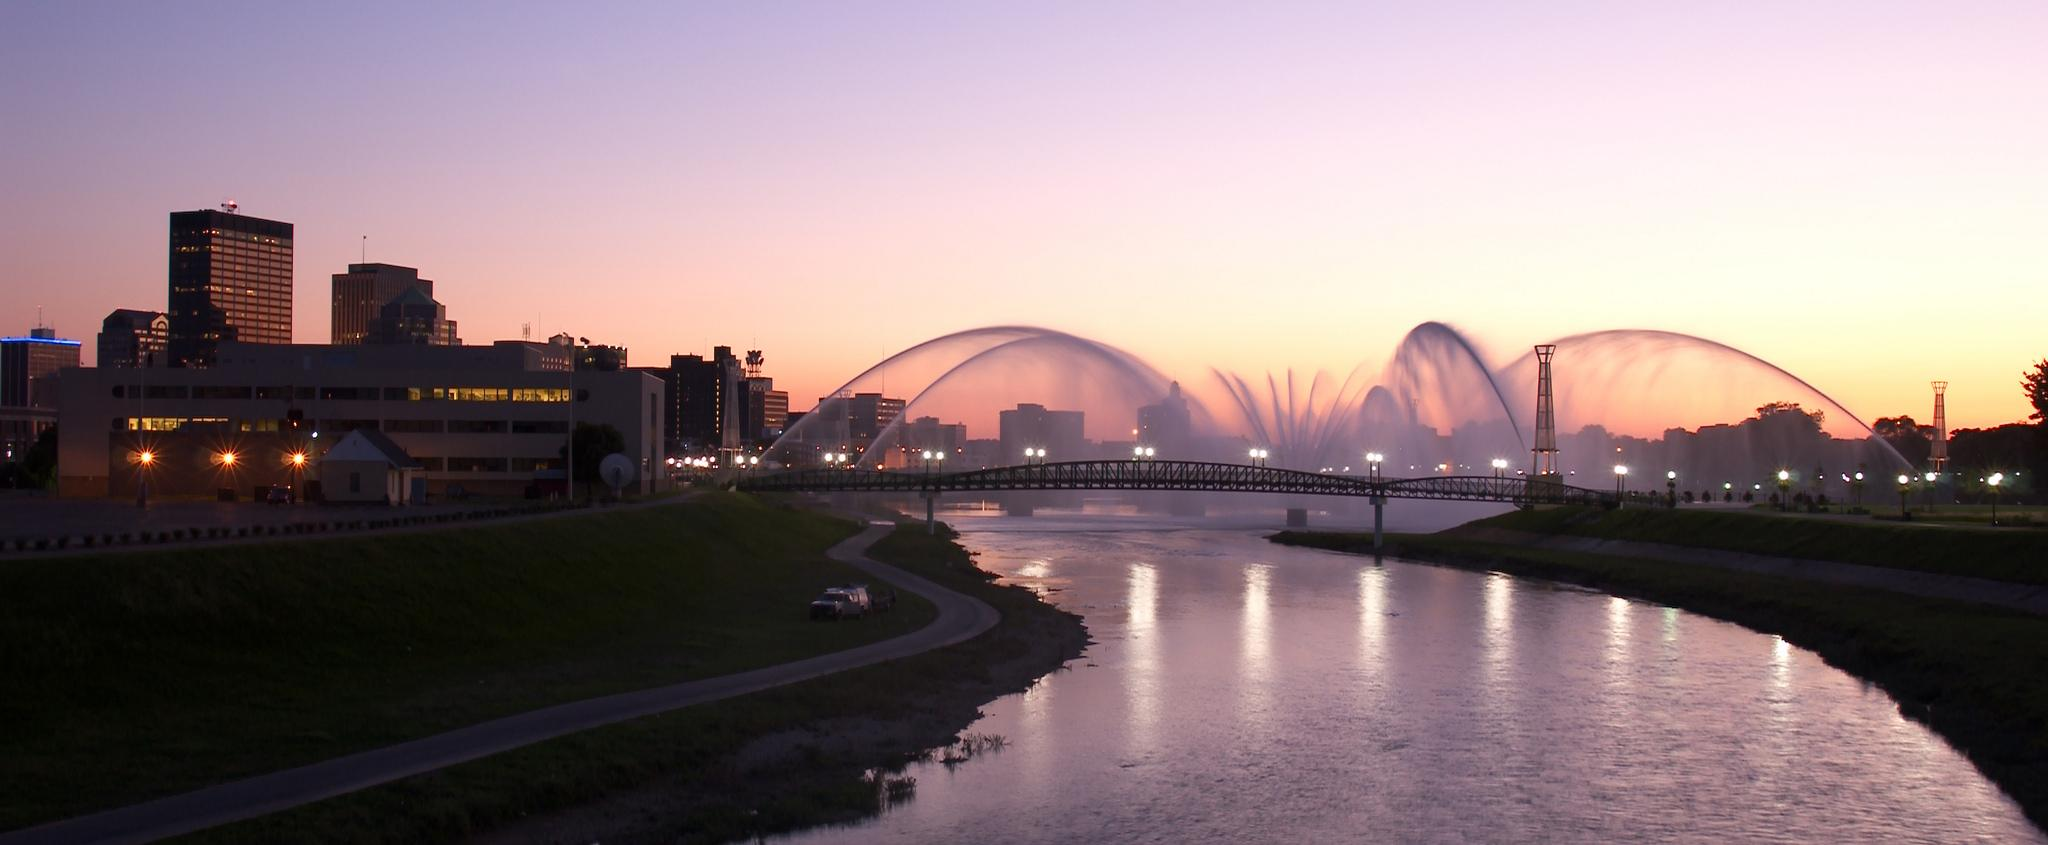 Dayton Riverscape with the fountains at sunset